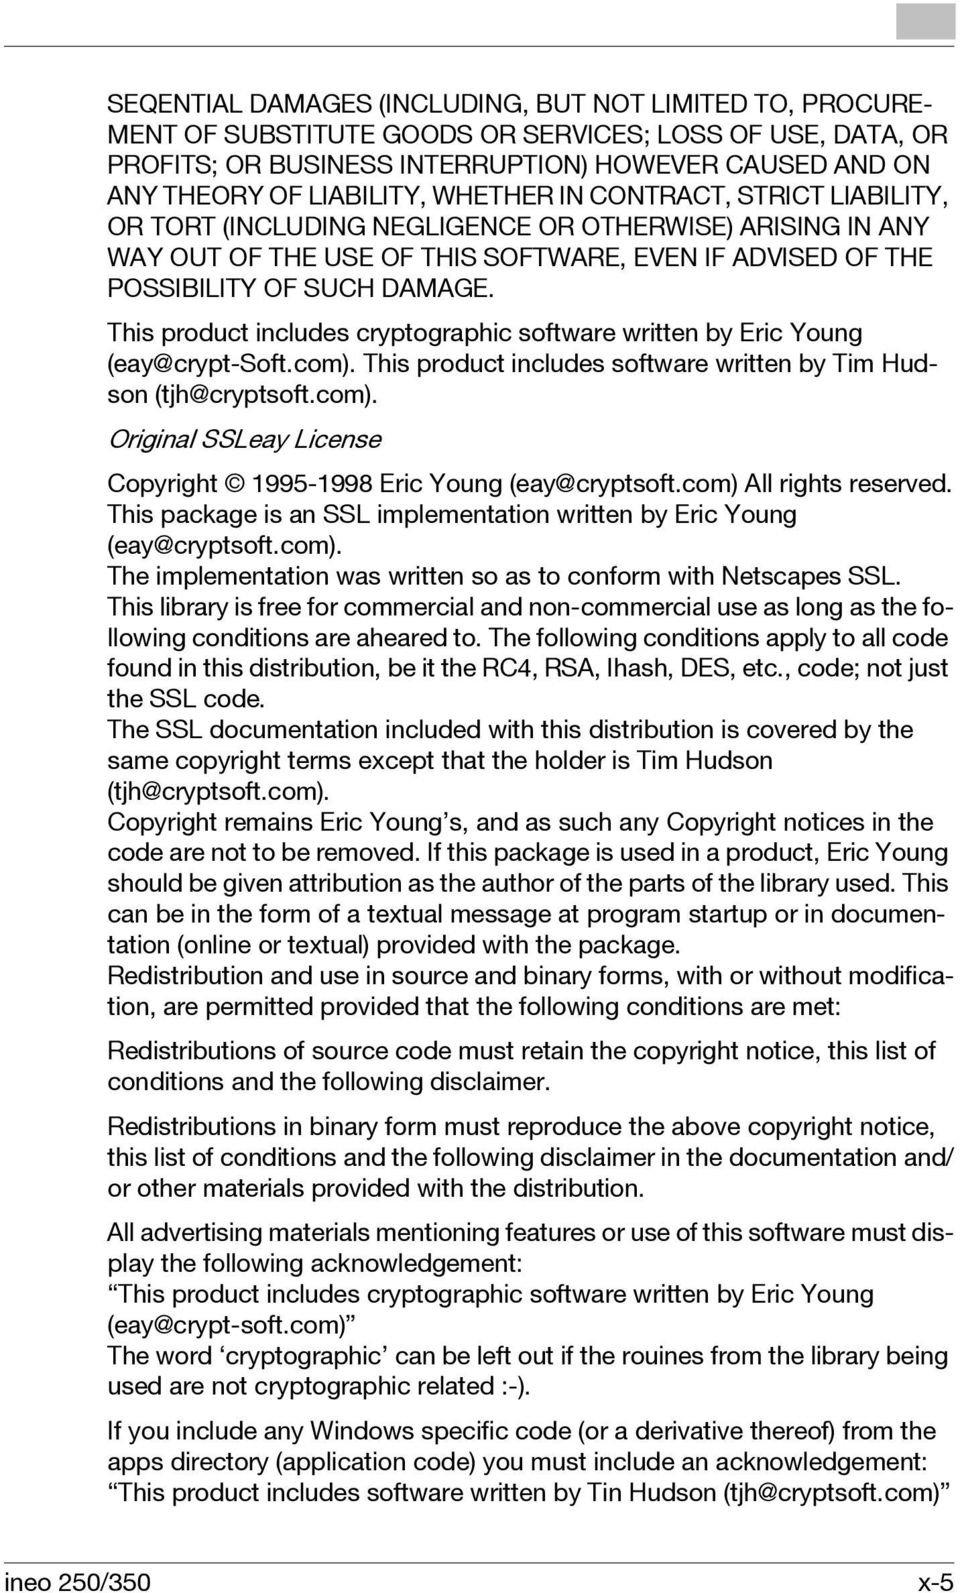 This product includes cryptographic software written by Eric Young (eay@crypt-soft.com). This product includes software written by Tim Hudson (tjh@cryptsoft.com). Original SSLeay License Copyright 1995-1998 Eric Young (eay@cryptsoft.